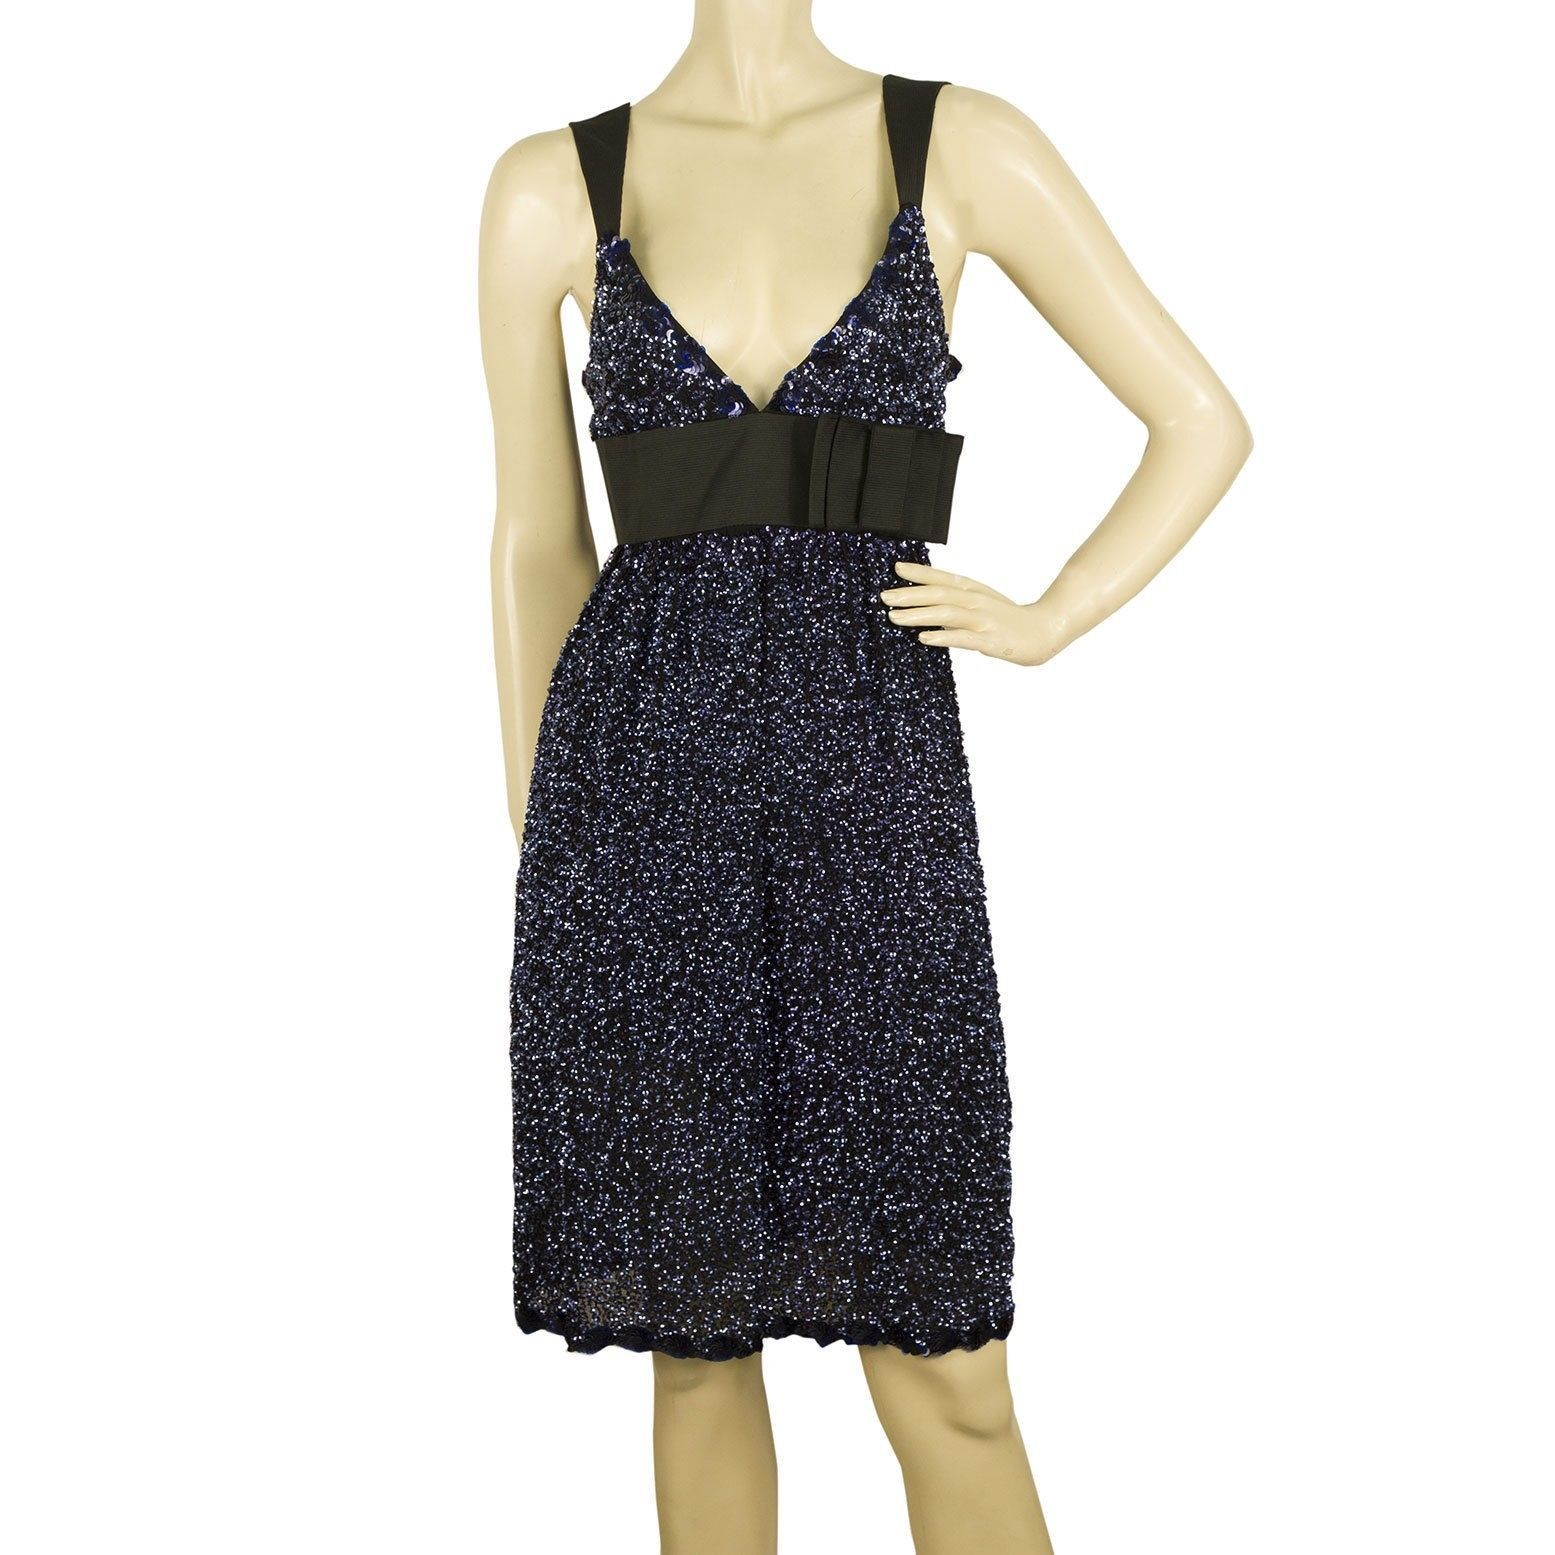 Duyan Midnight Blue Black Fully Sequined Knee Length Bow Dress size 42 It